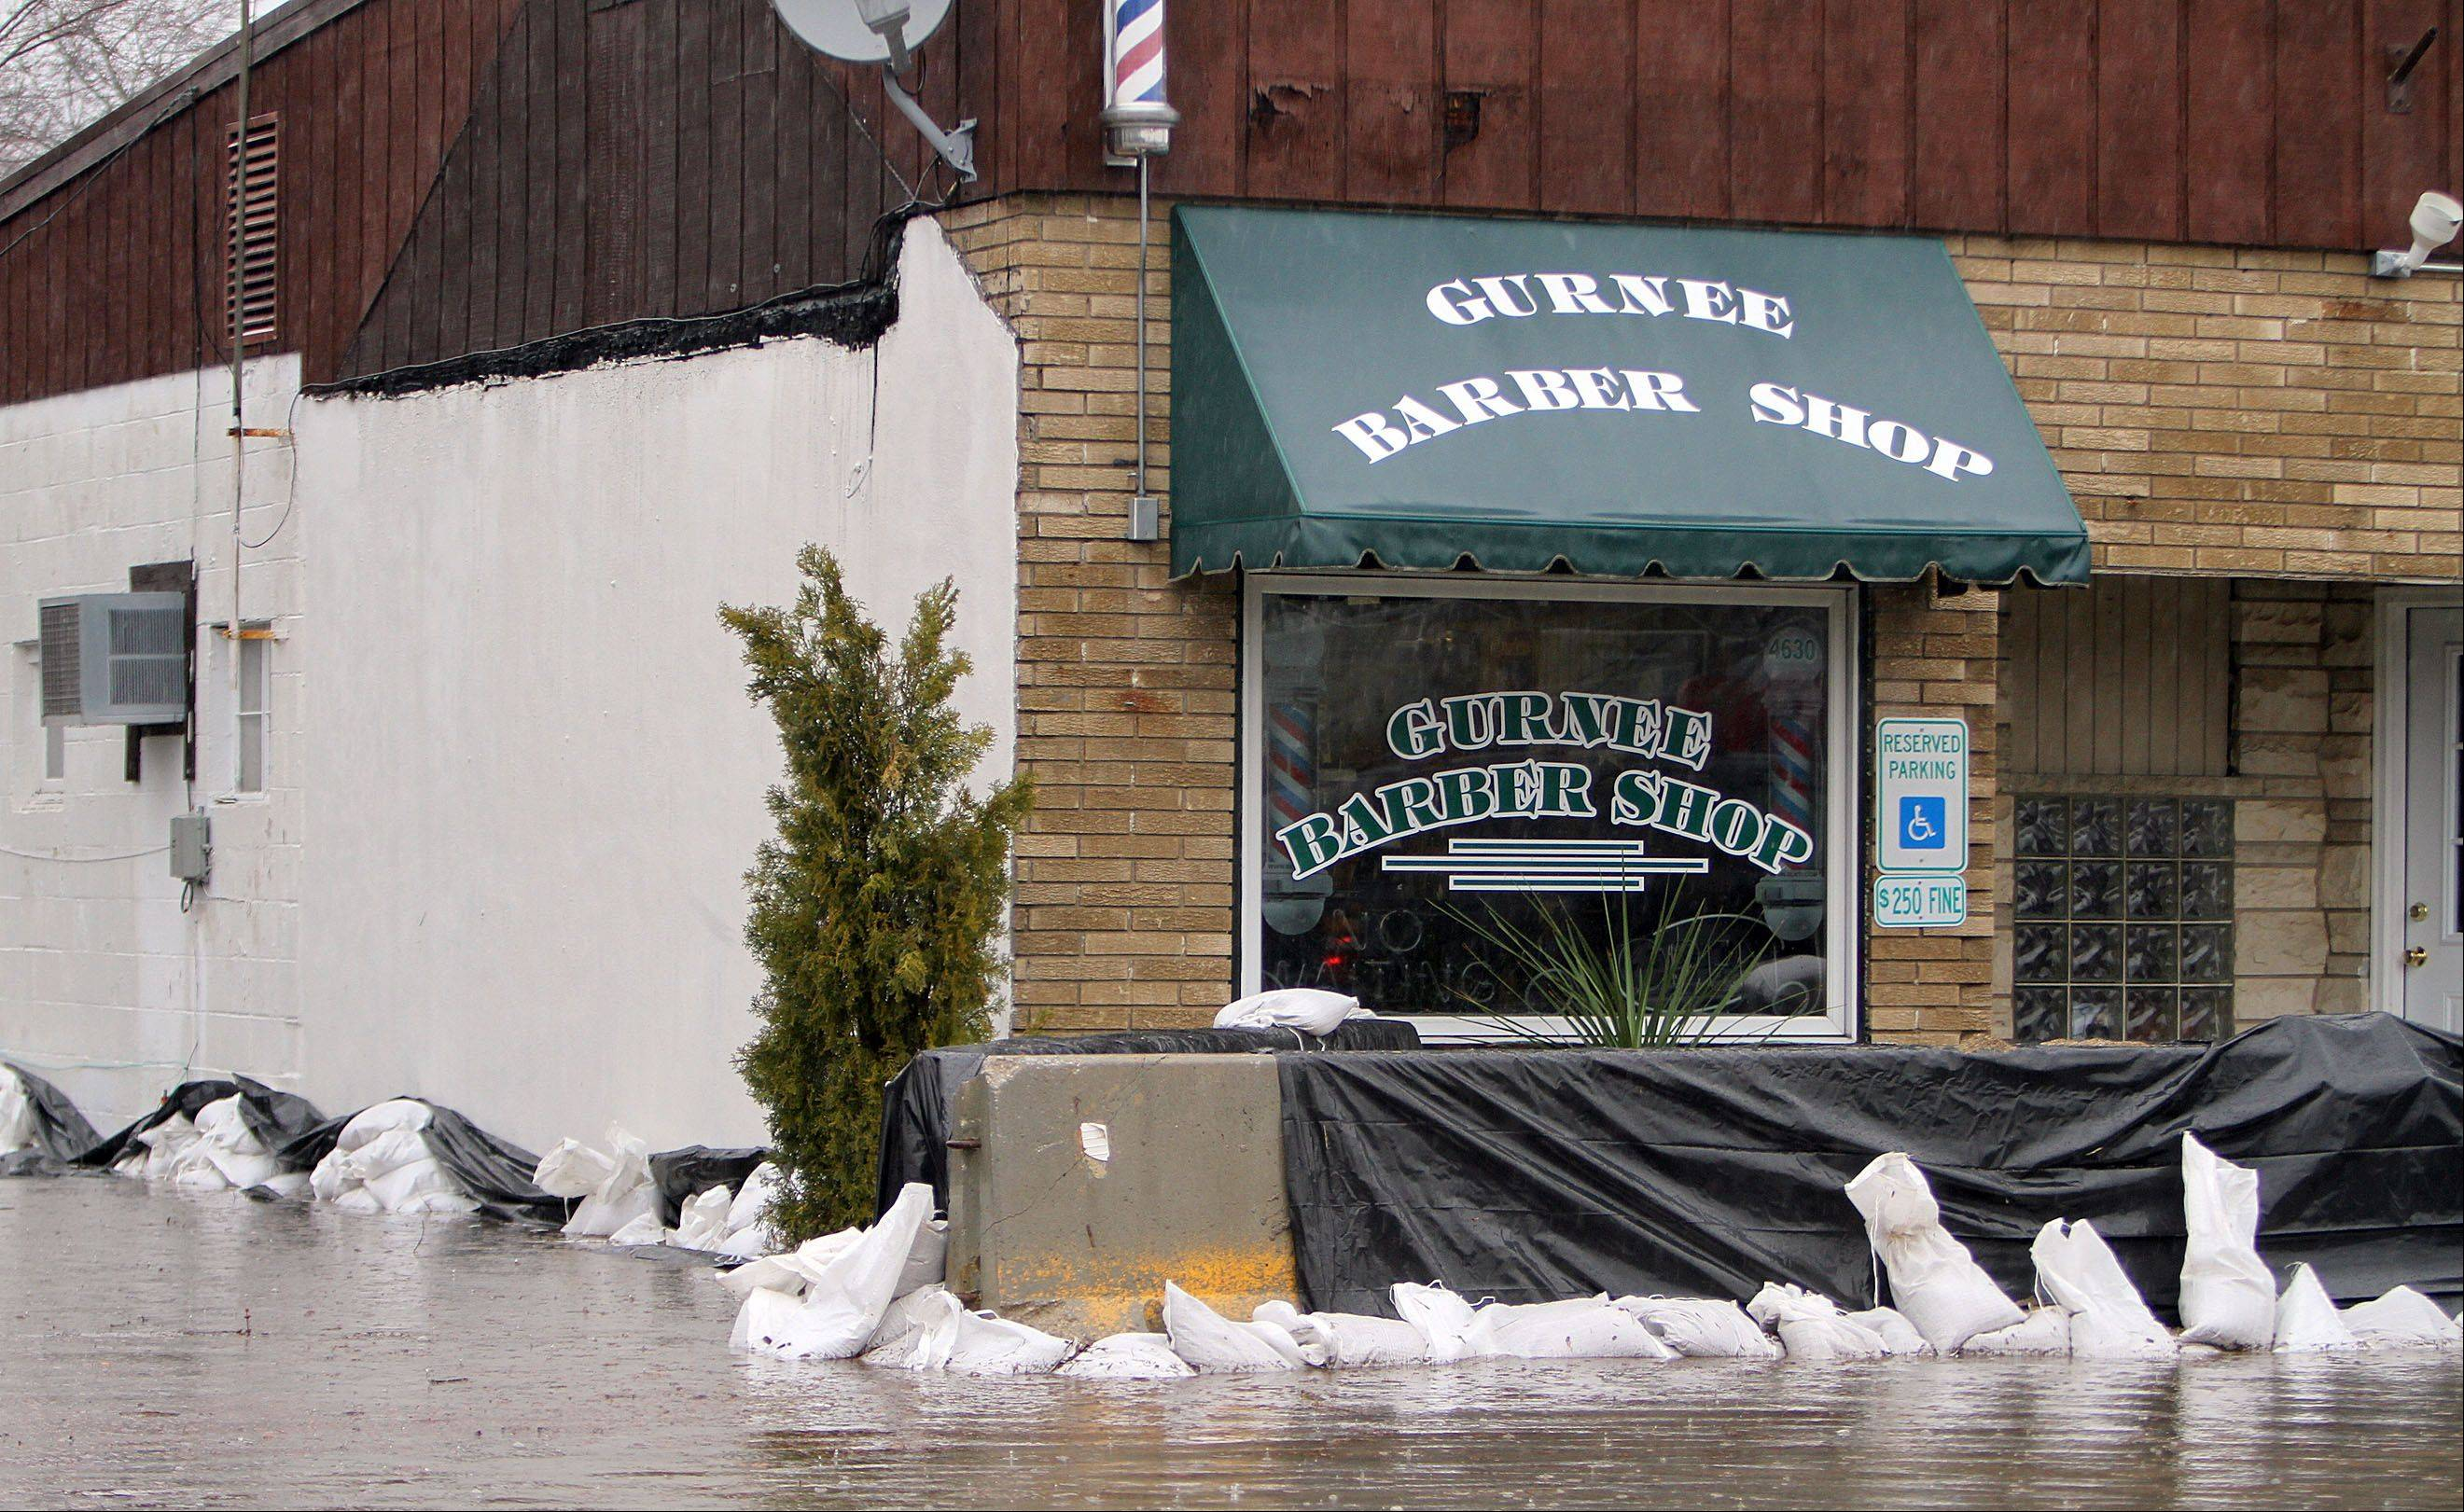 Suburbs' flooding woes might last awhile